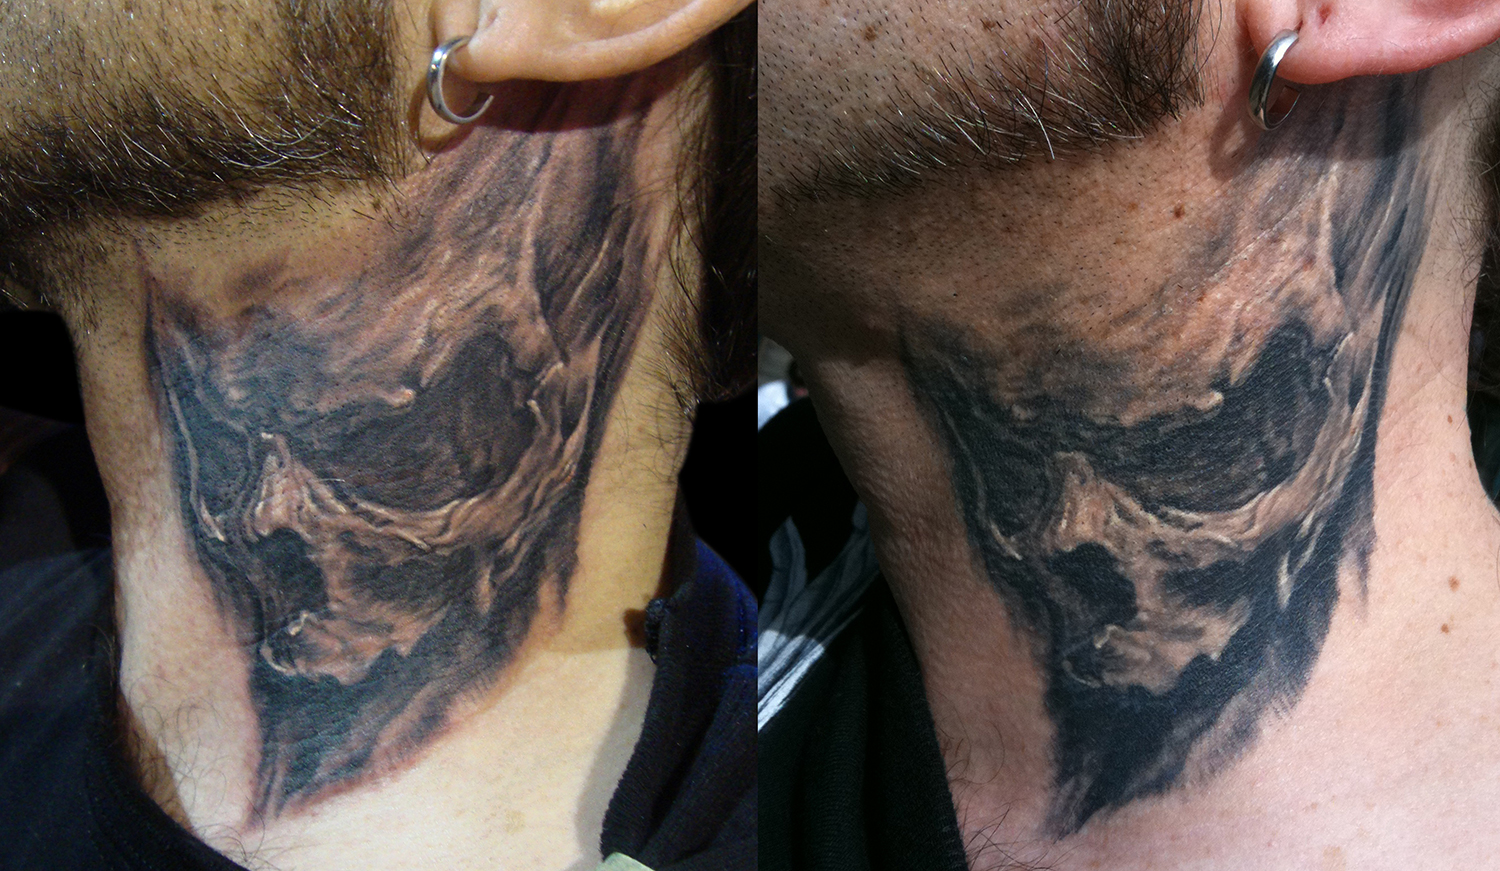 Black and Grey Neck Skull Tattoo, (fresh photo on left, and healed photo on right) International London Tattoo Convention, UK